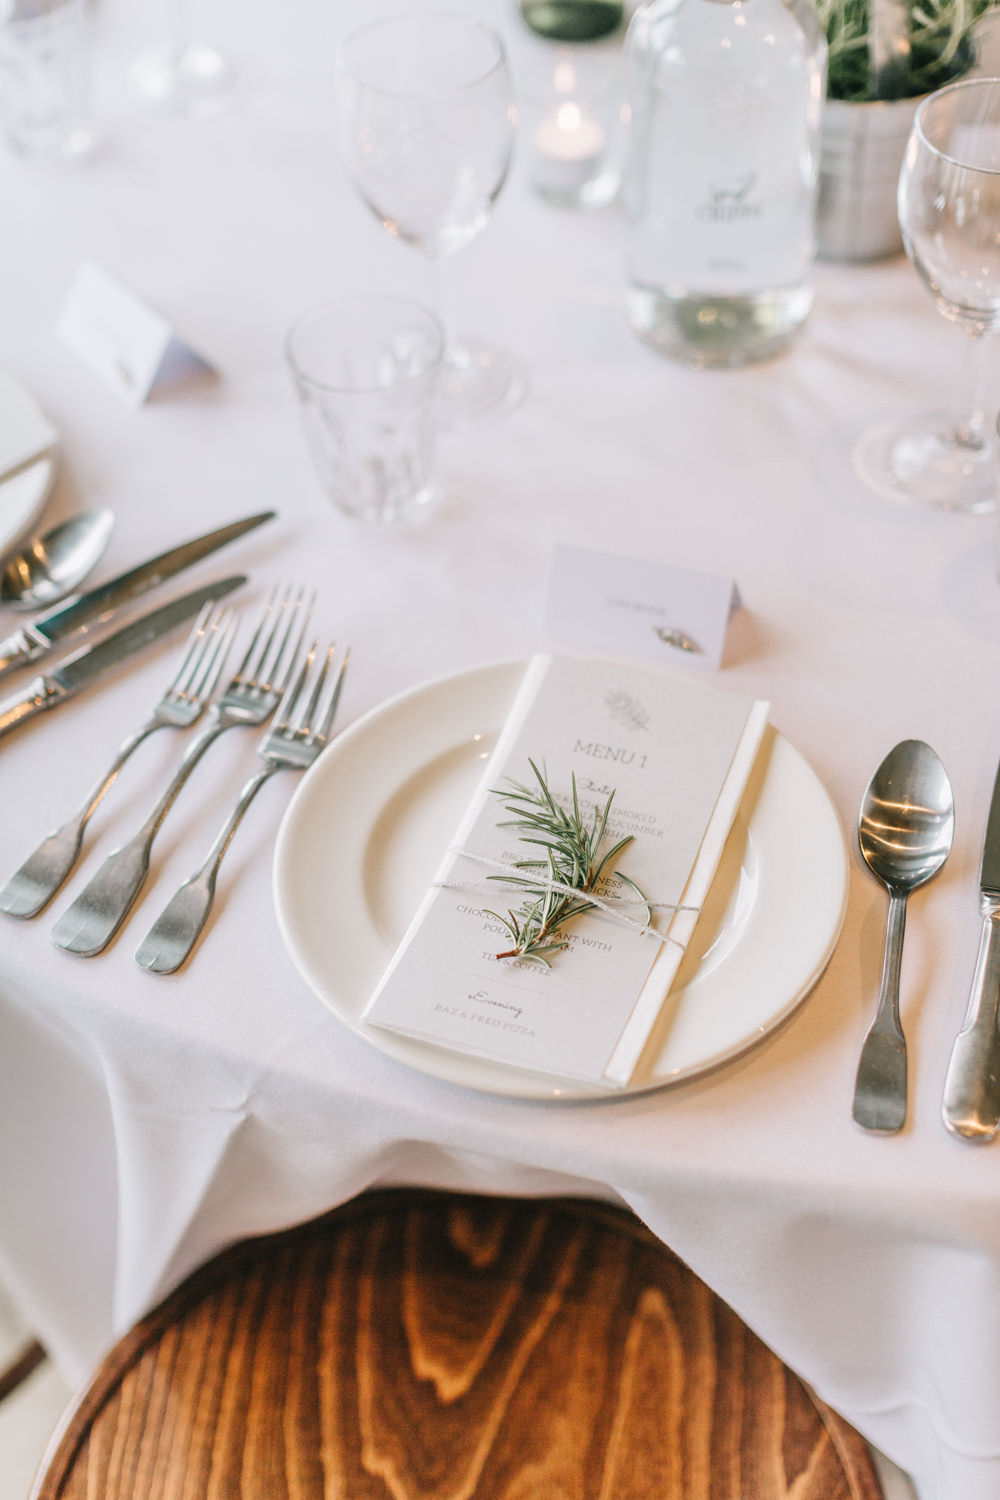 Rosemary Place Setting Menu Stationery Healey Barn Wedding Amy Lou Photography